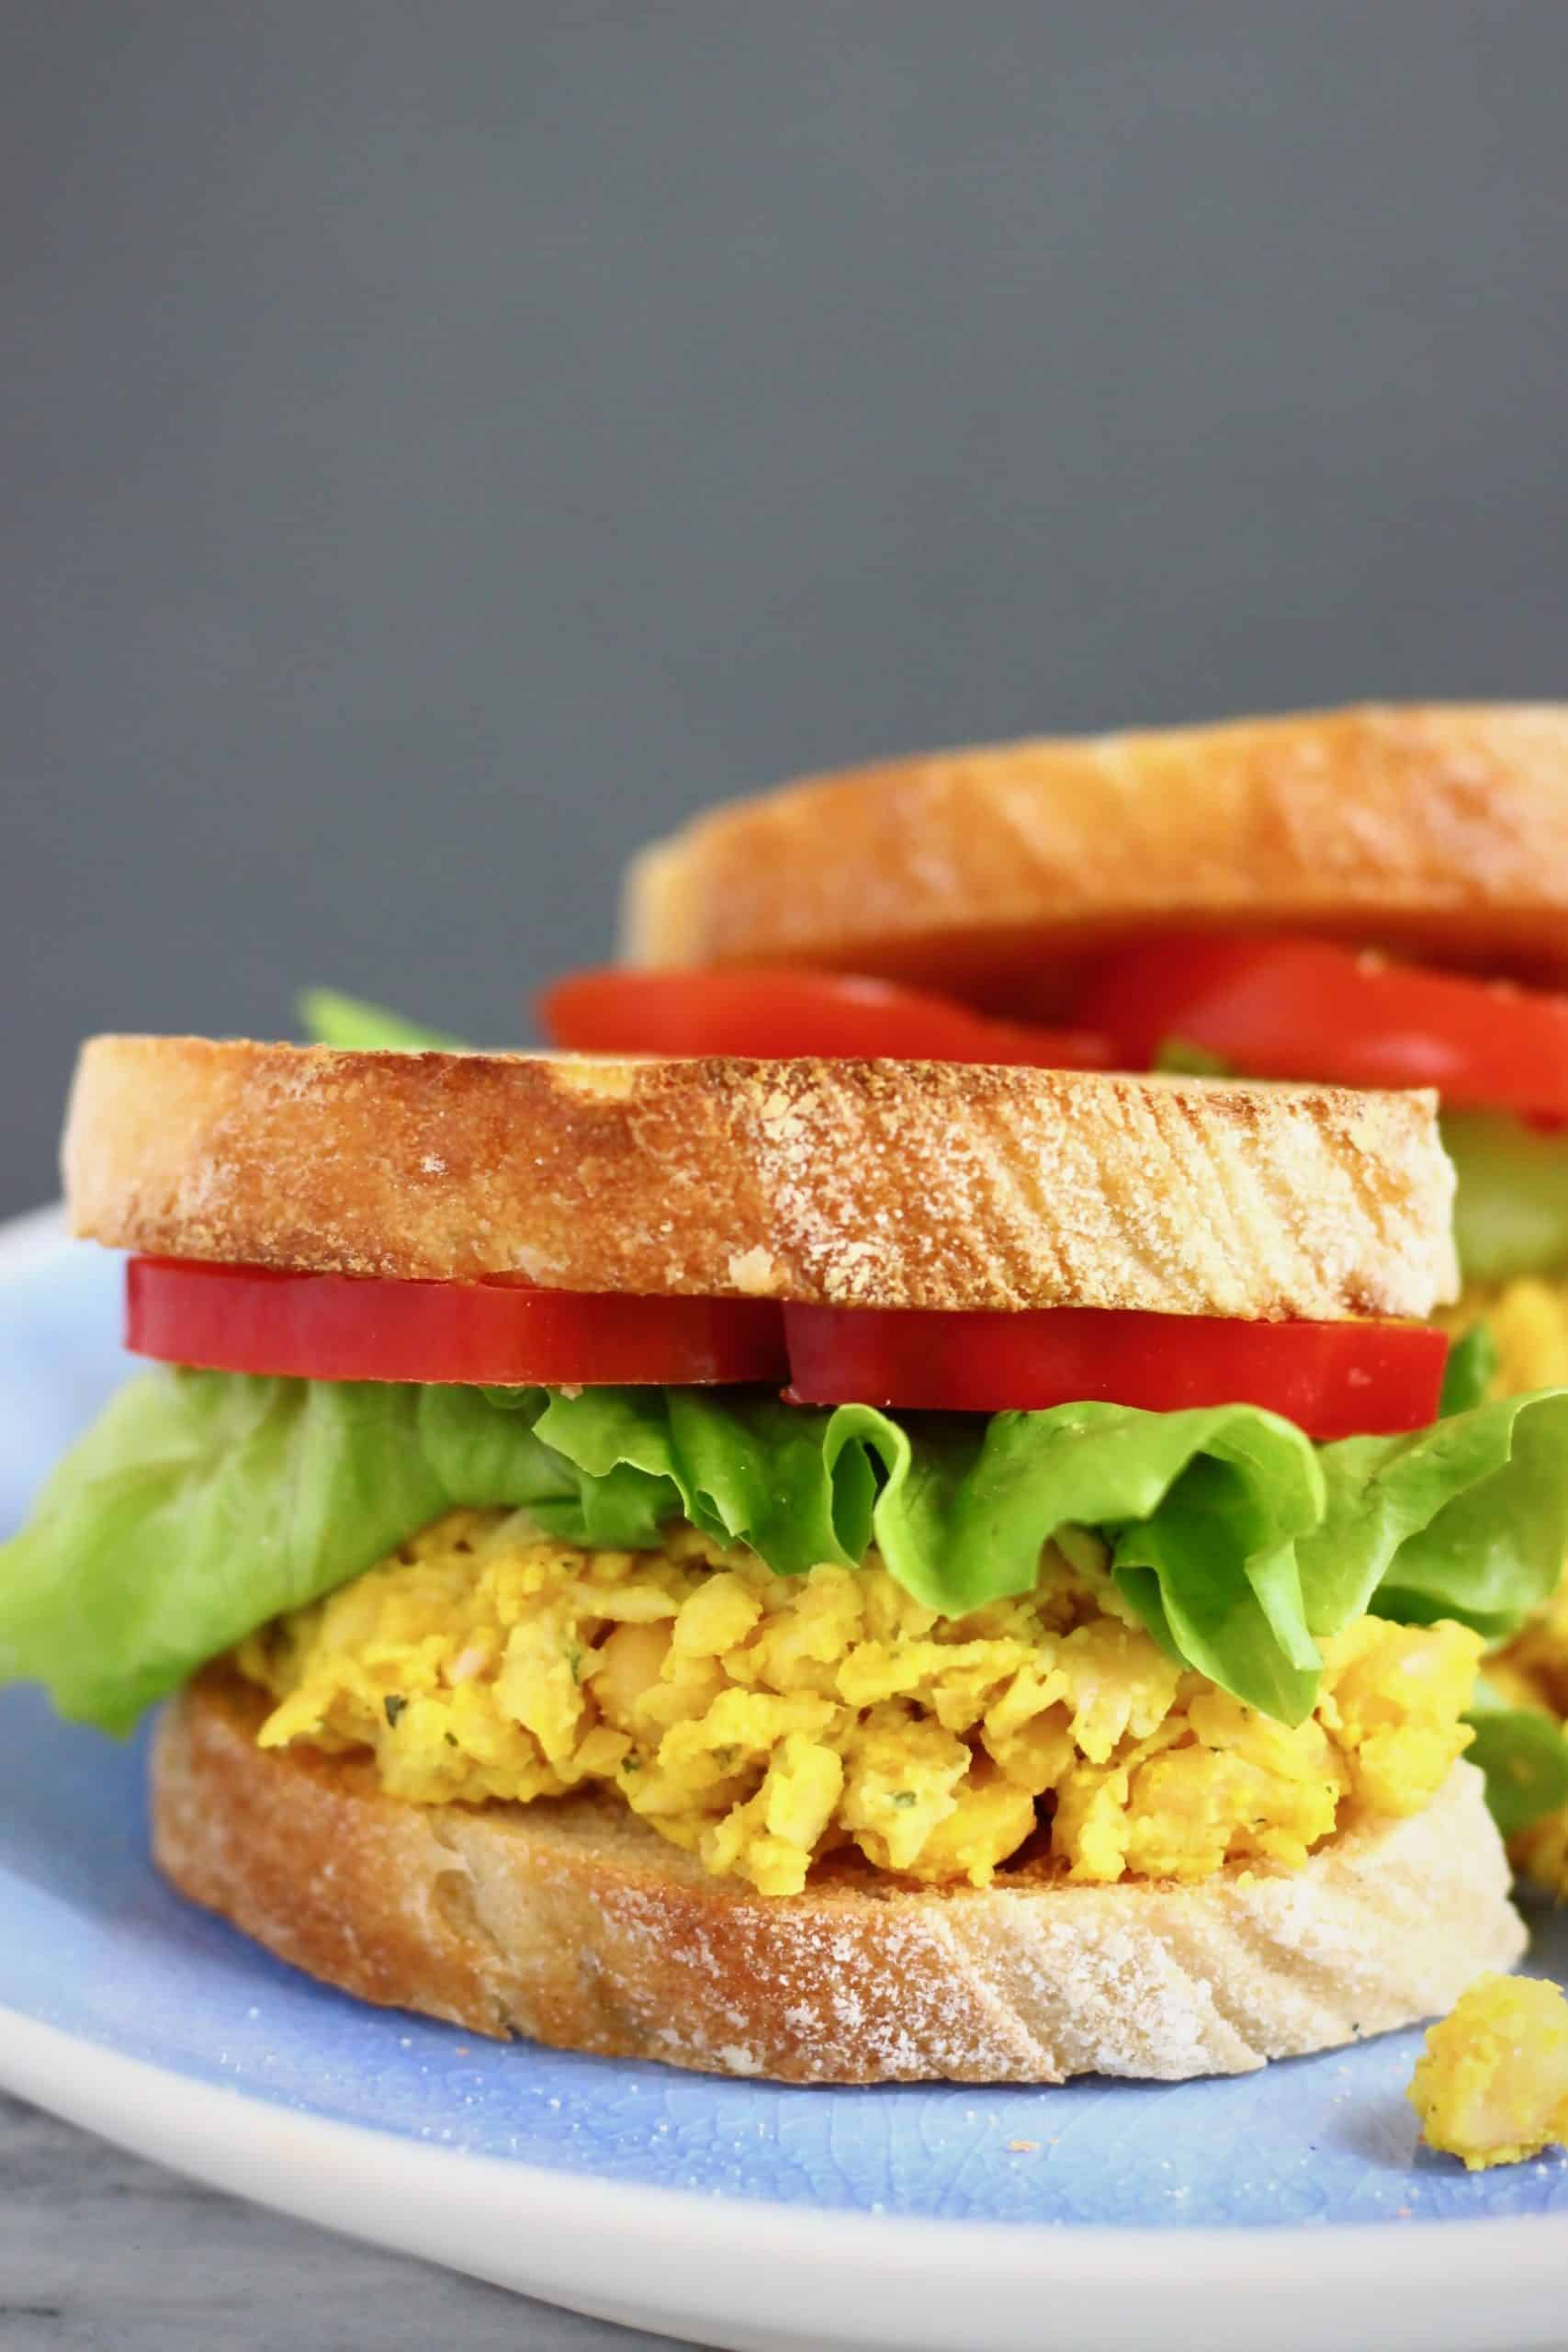 Curried chickpea sandwich with lettuce and red peppers